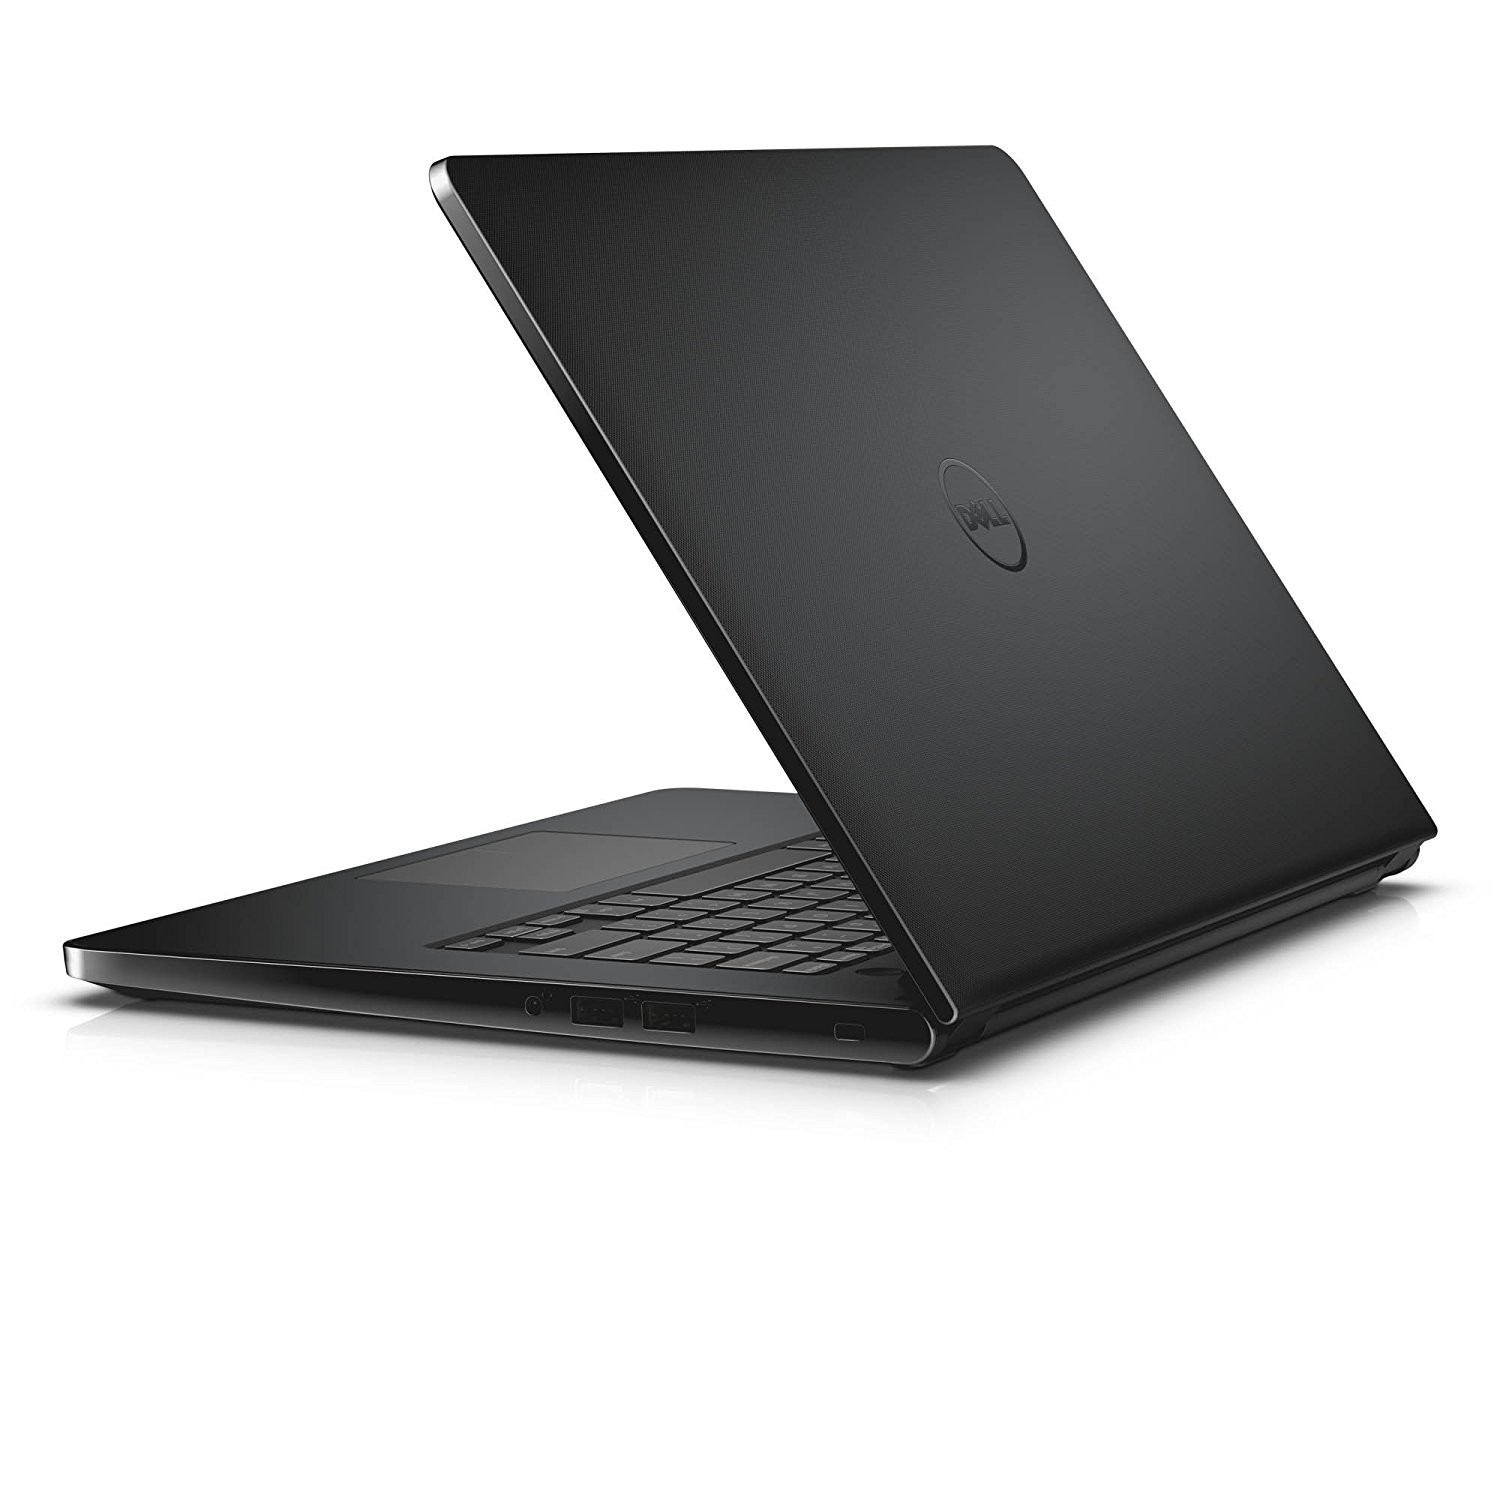 DEL-3558-i3-Dell Inspiron 3558 Refurbished Laptop 4 GB RAM 500 GB HDD Core i3 15.6-inch Windows 10 Pro-image